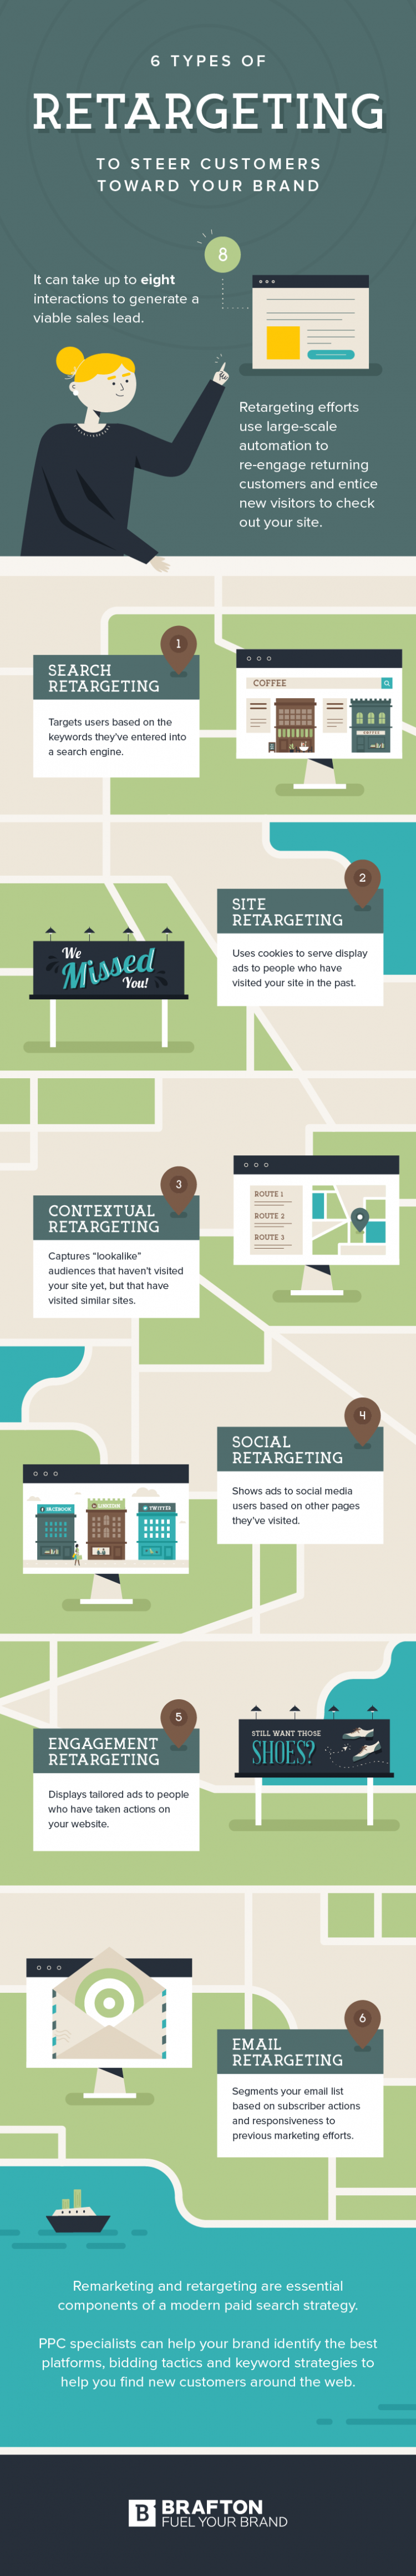 6 types of retargeting: search retargeting; site retargeting; email retargeting; contextual retargeting; social retargeting; engagement retargeting